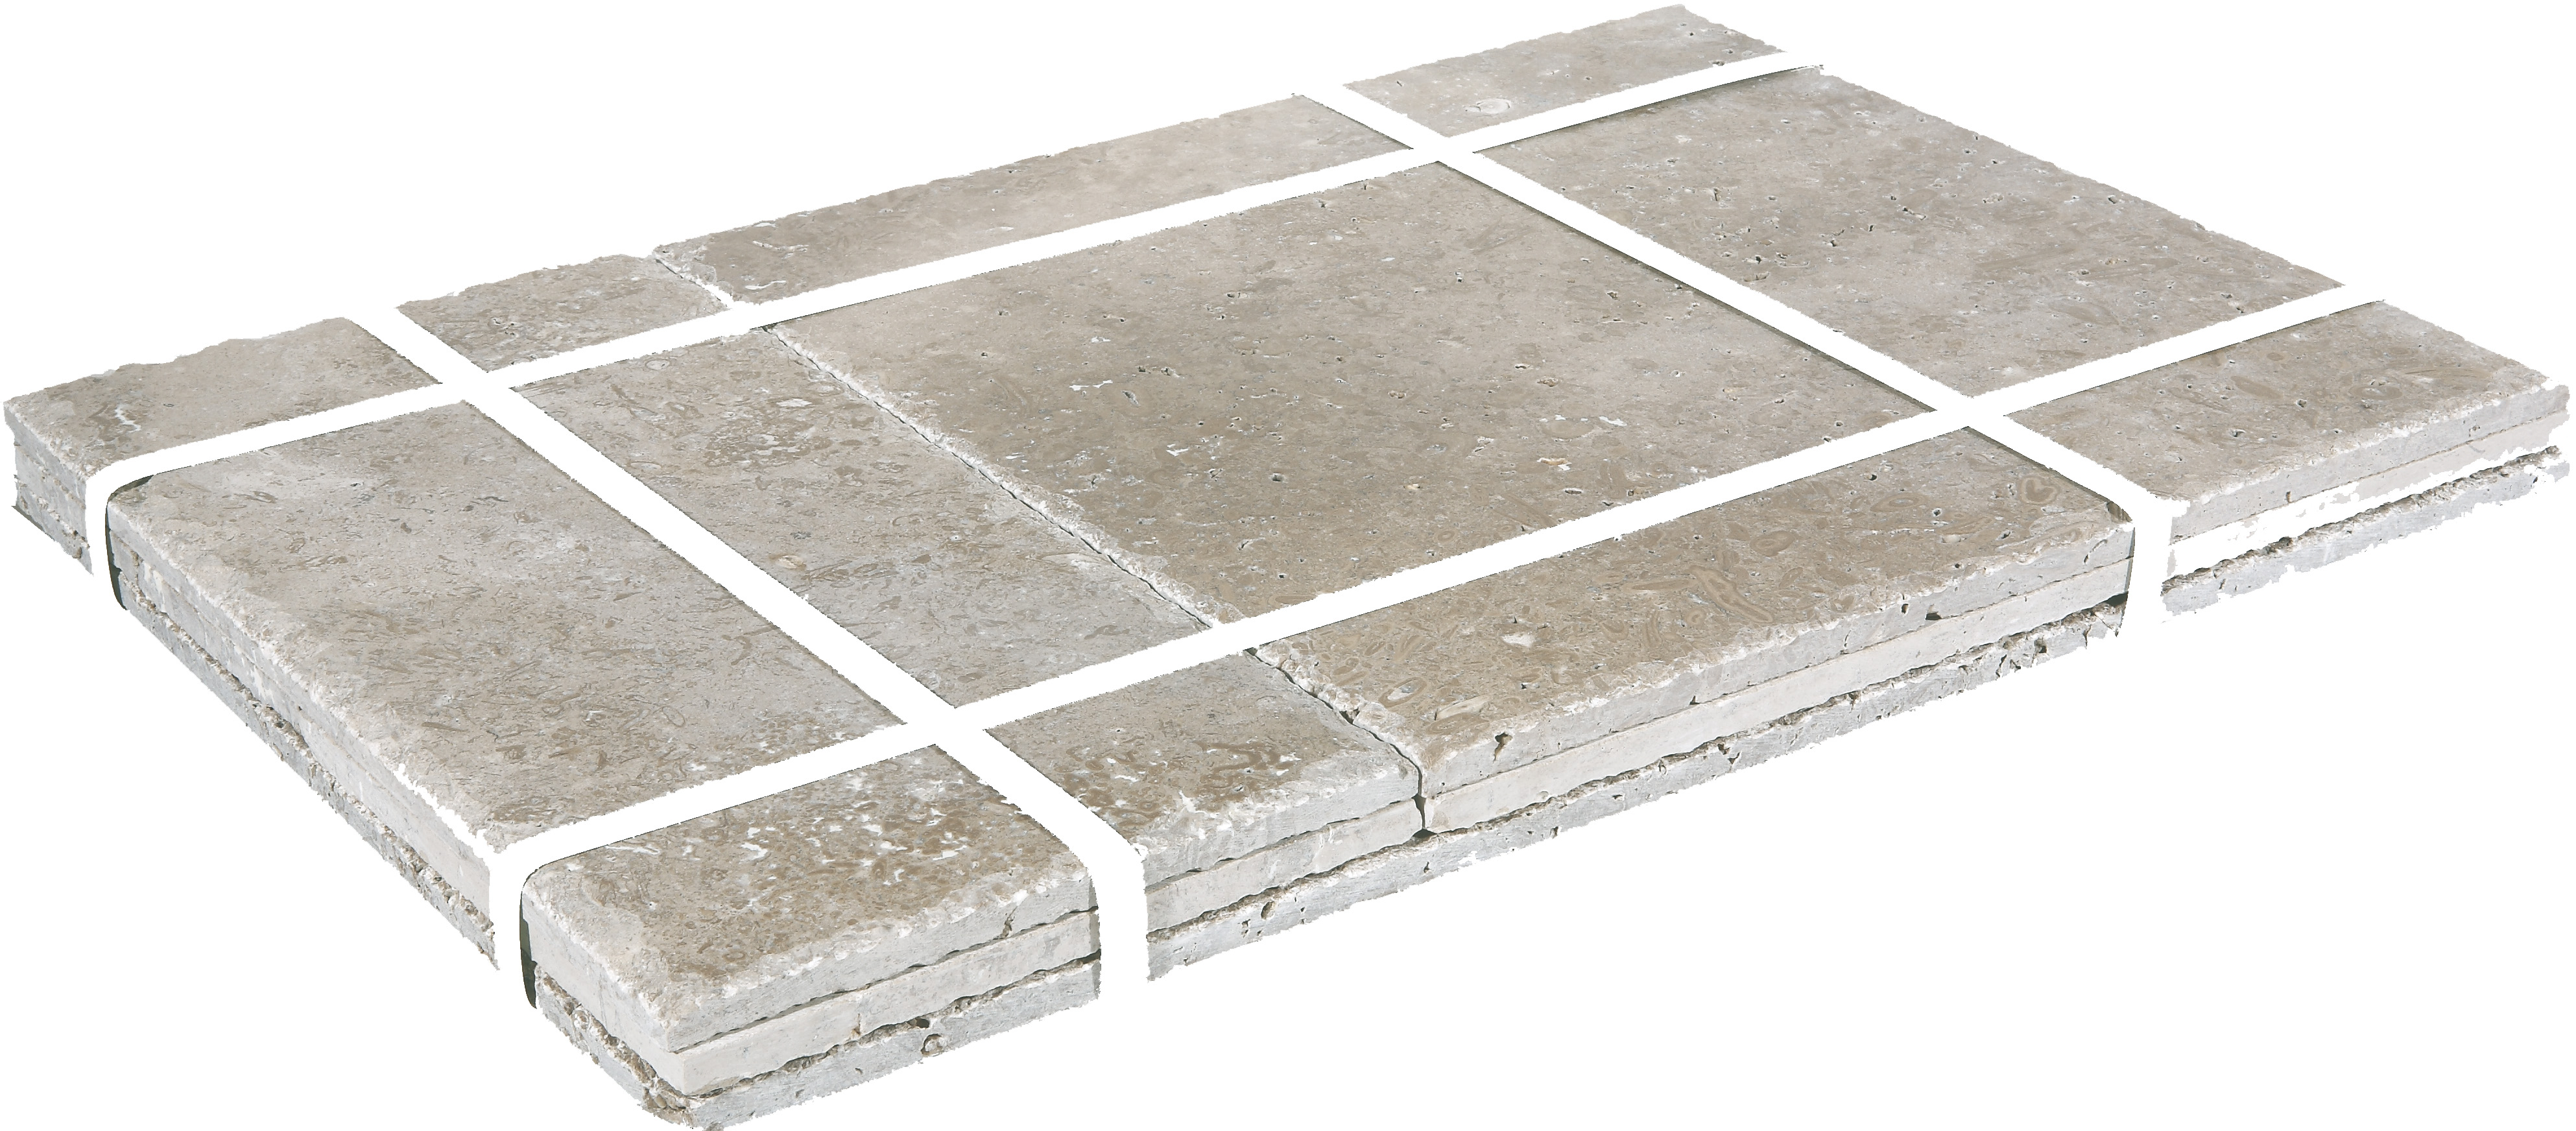 noce brushed and chiseled french pattern travertine tiles-Travetine sales